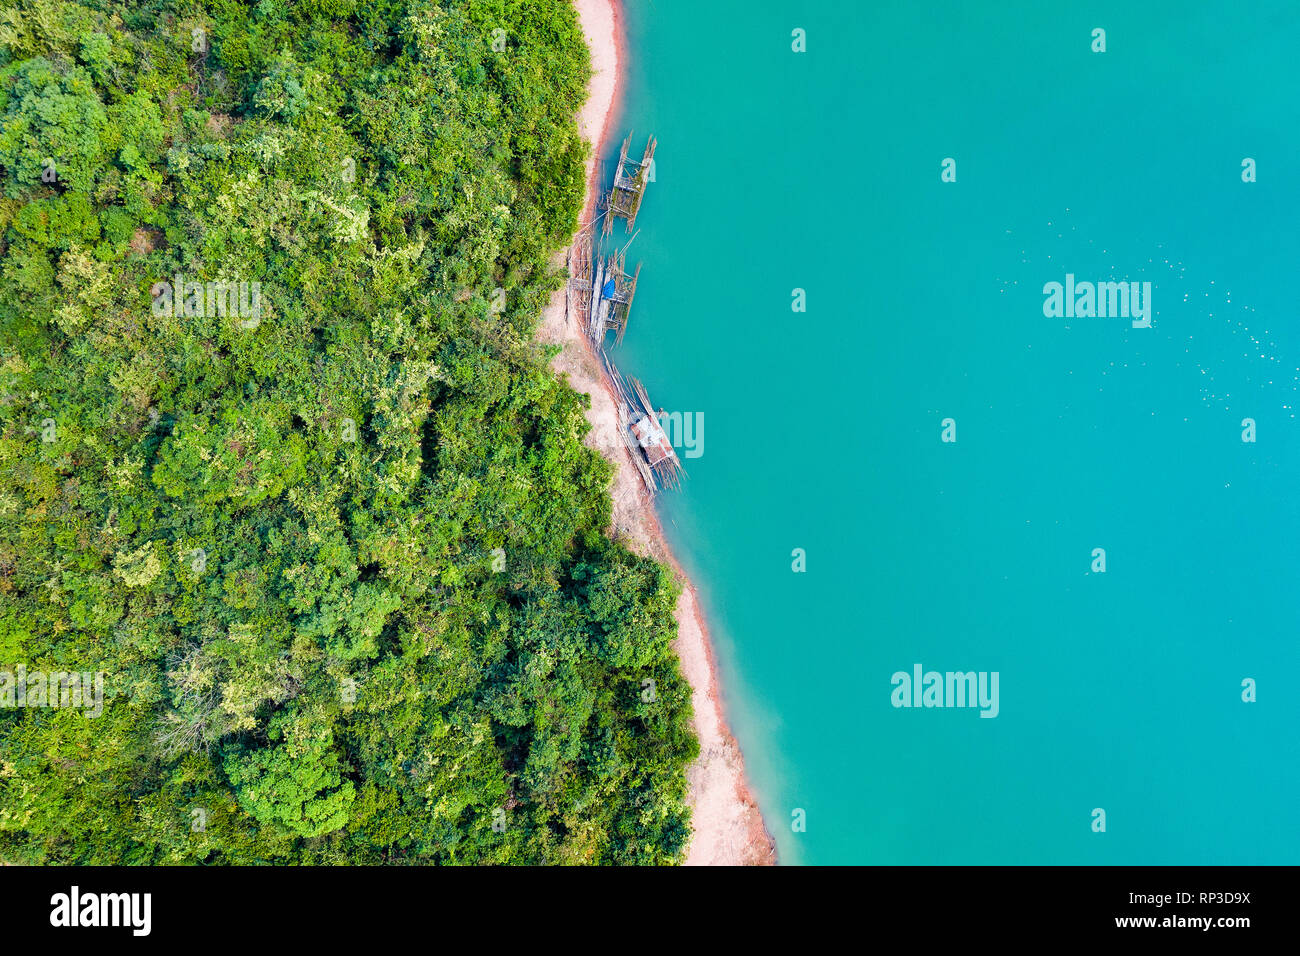 (View from above) Stunning aerial view of a a green coast of a tropical island with some traditional fishing boats in Nam Ngum Reservoir. Stock Photo